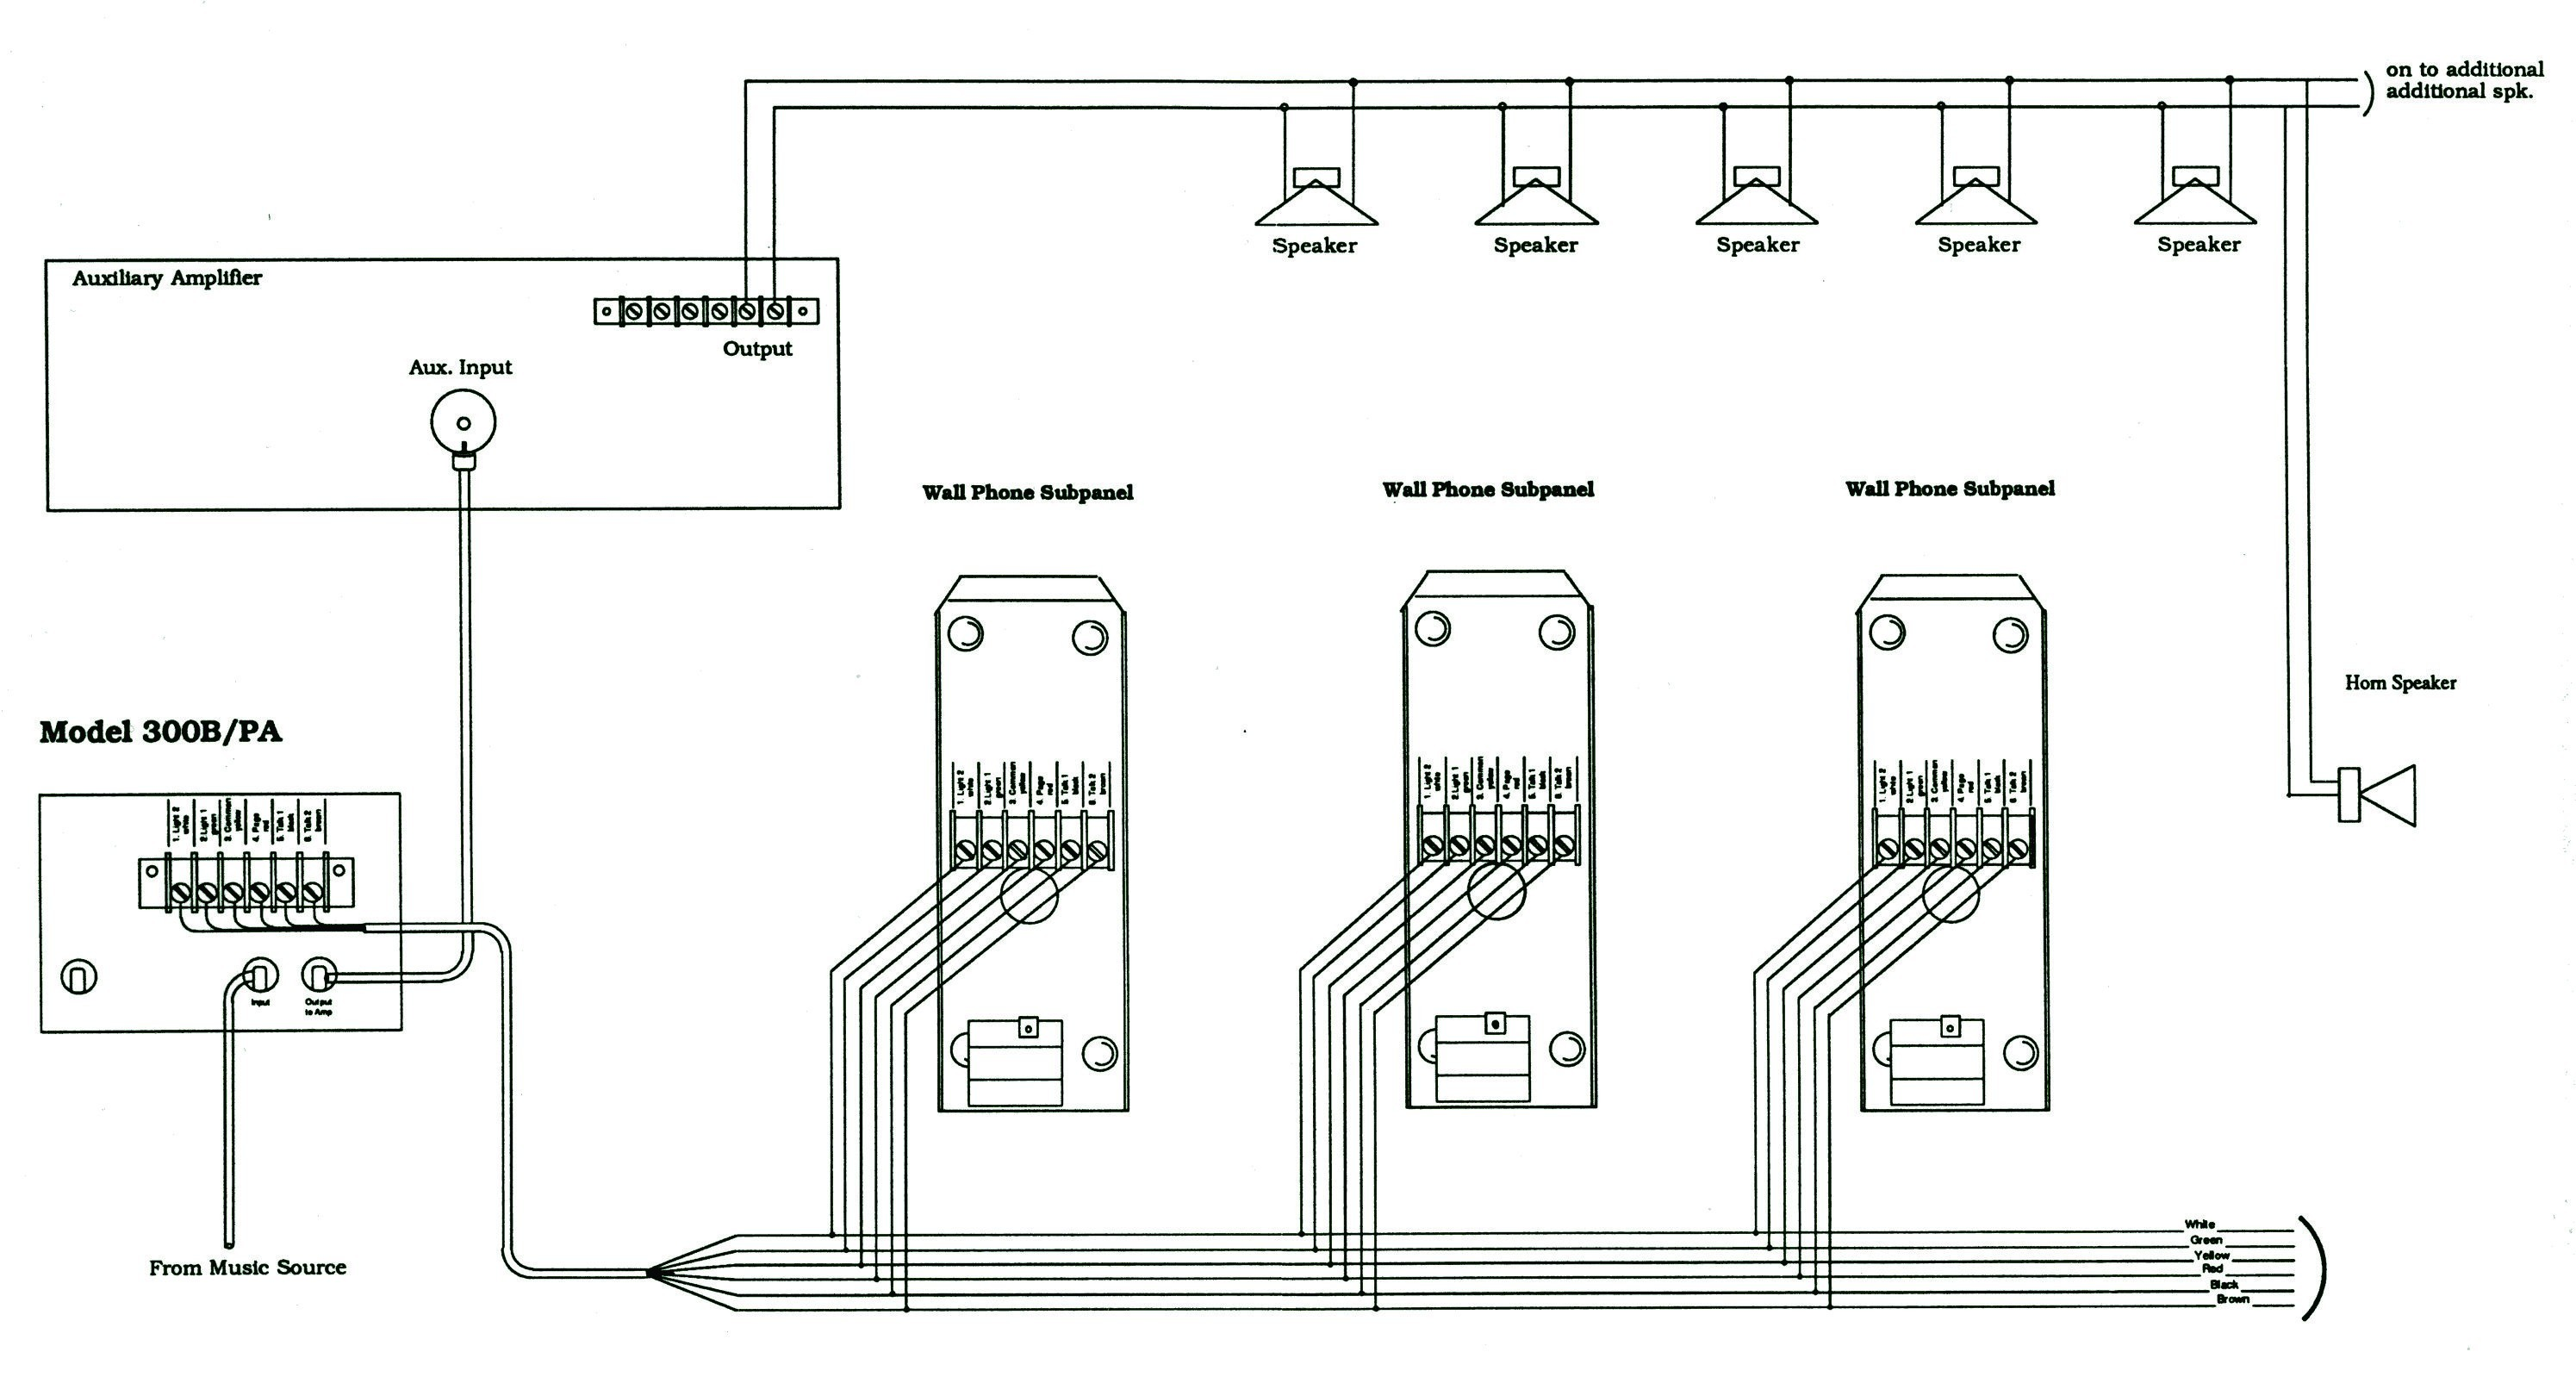 Jack Speaker Cabinet Wiring Free Download Diagram Schematic Mono To Stereo Mic Also Val Speakers Daisy Chain Rh 140 82 8 31